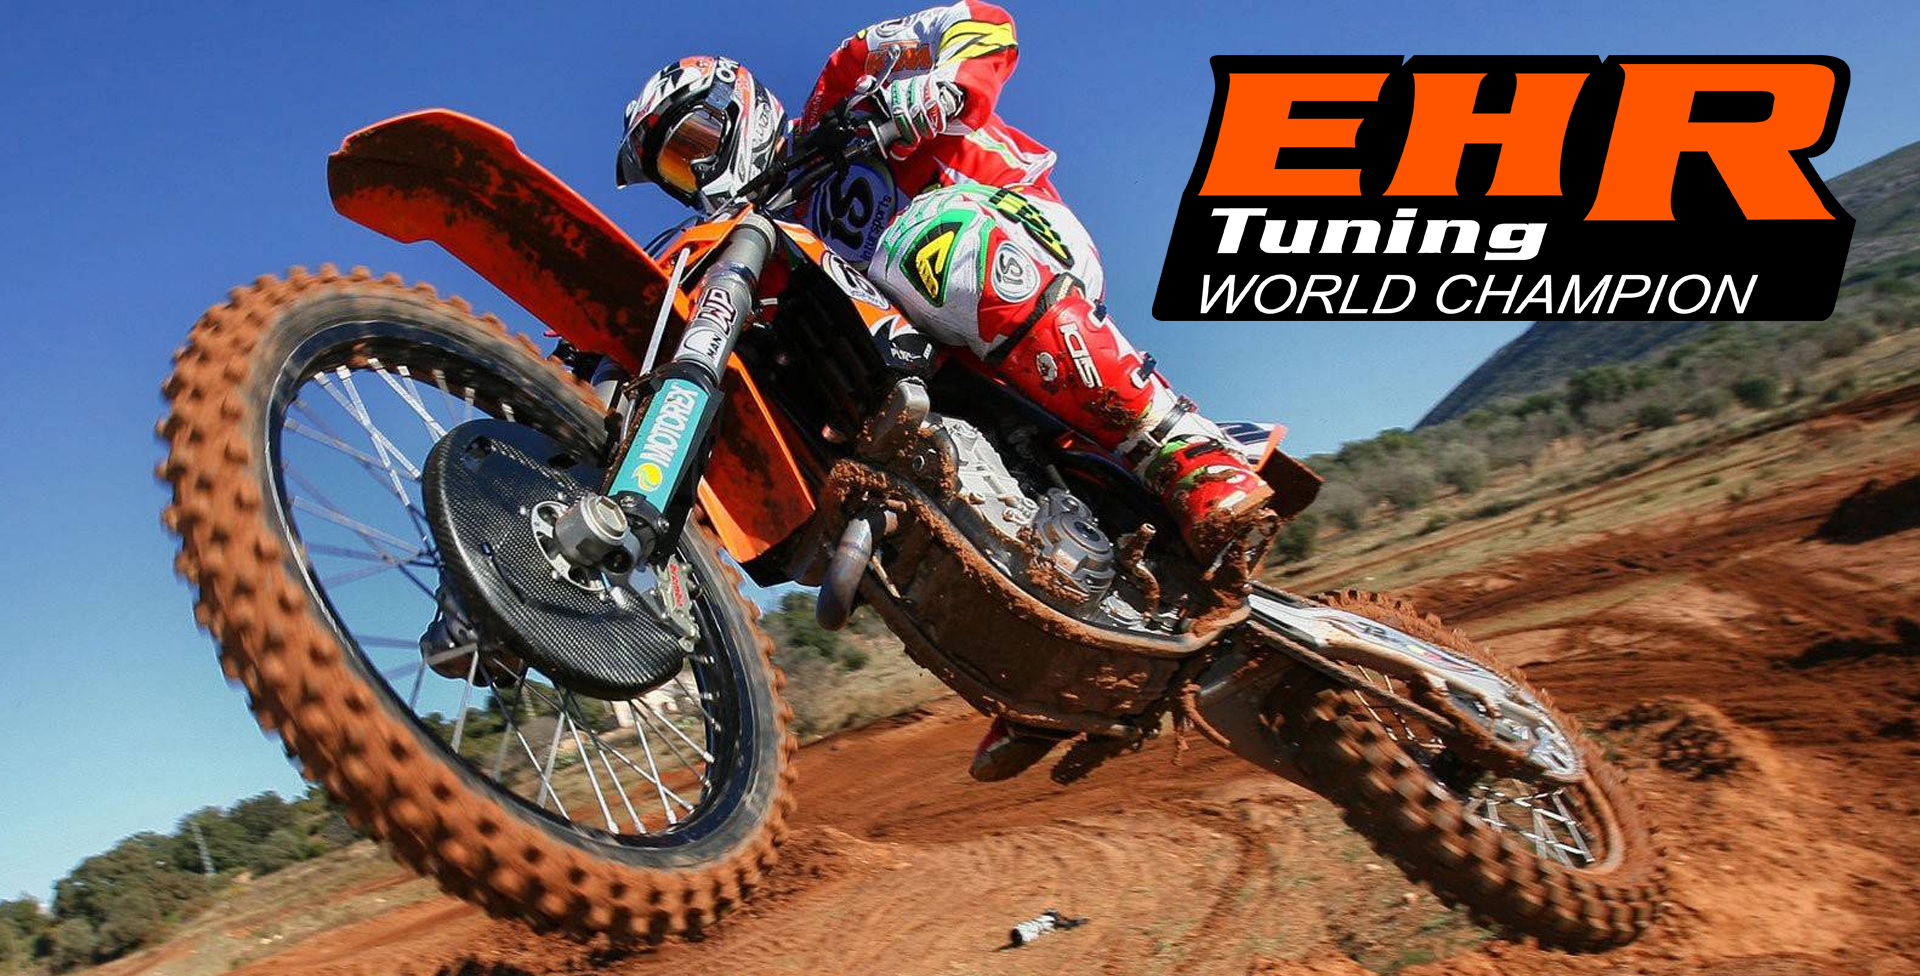 EHR Tuning – World Champion Tuning